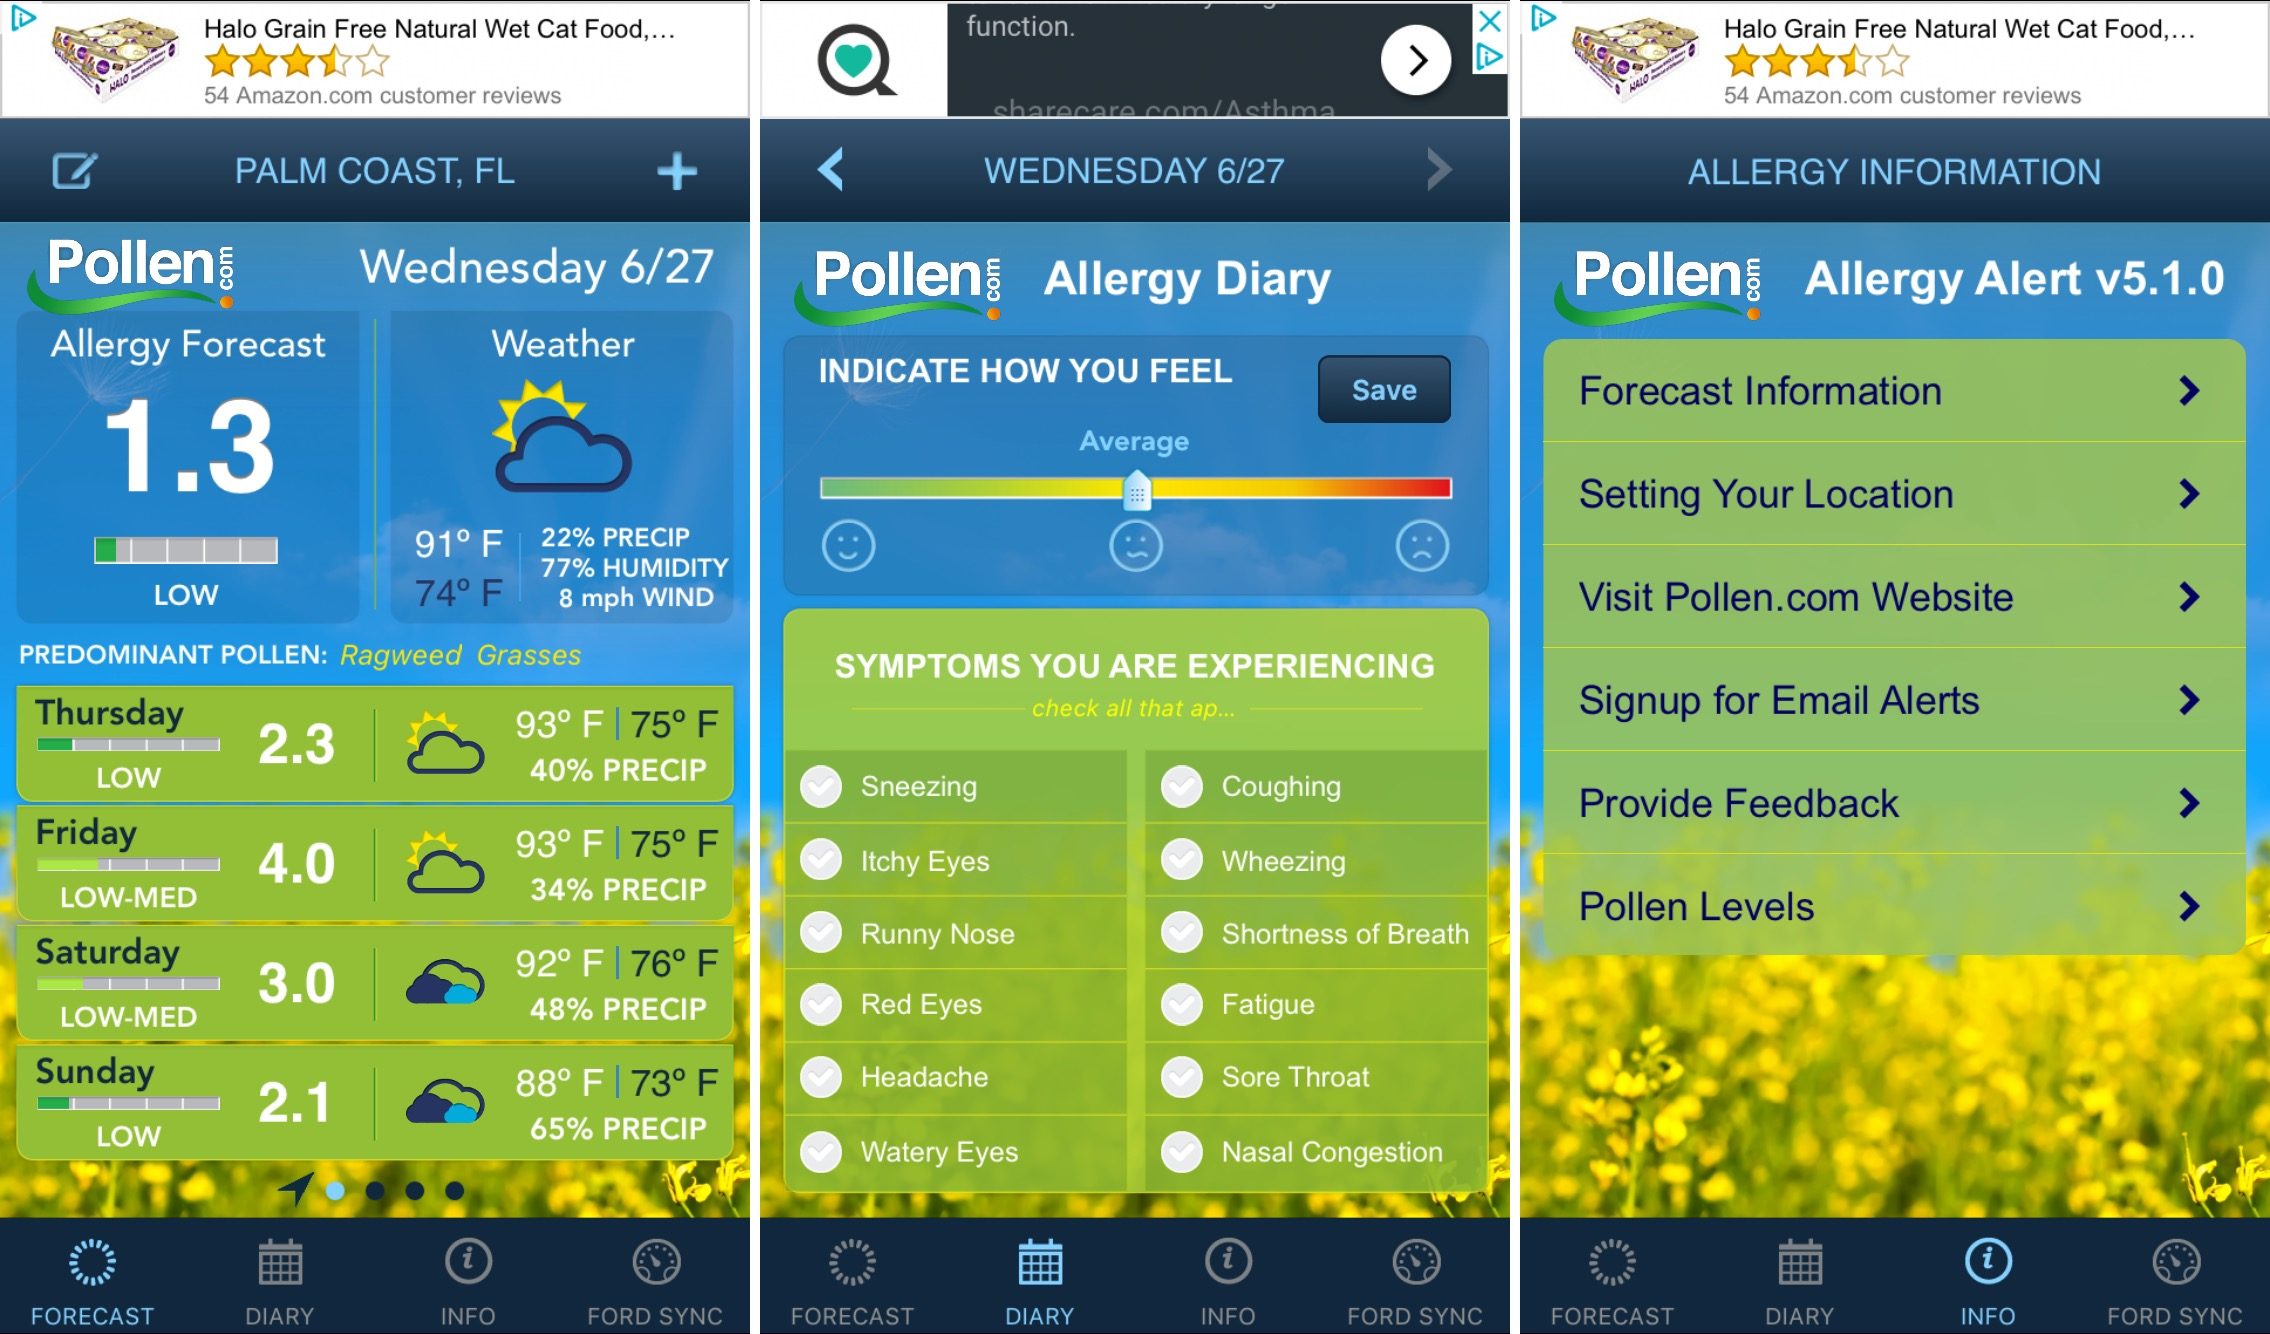 PollenDotCom Allergy Alert on iPhone